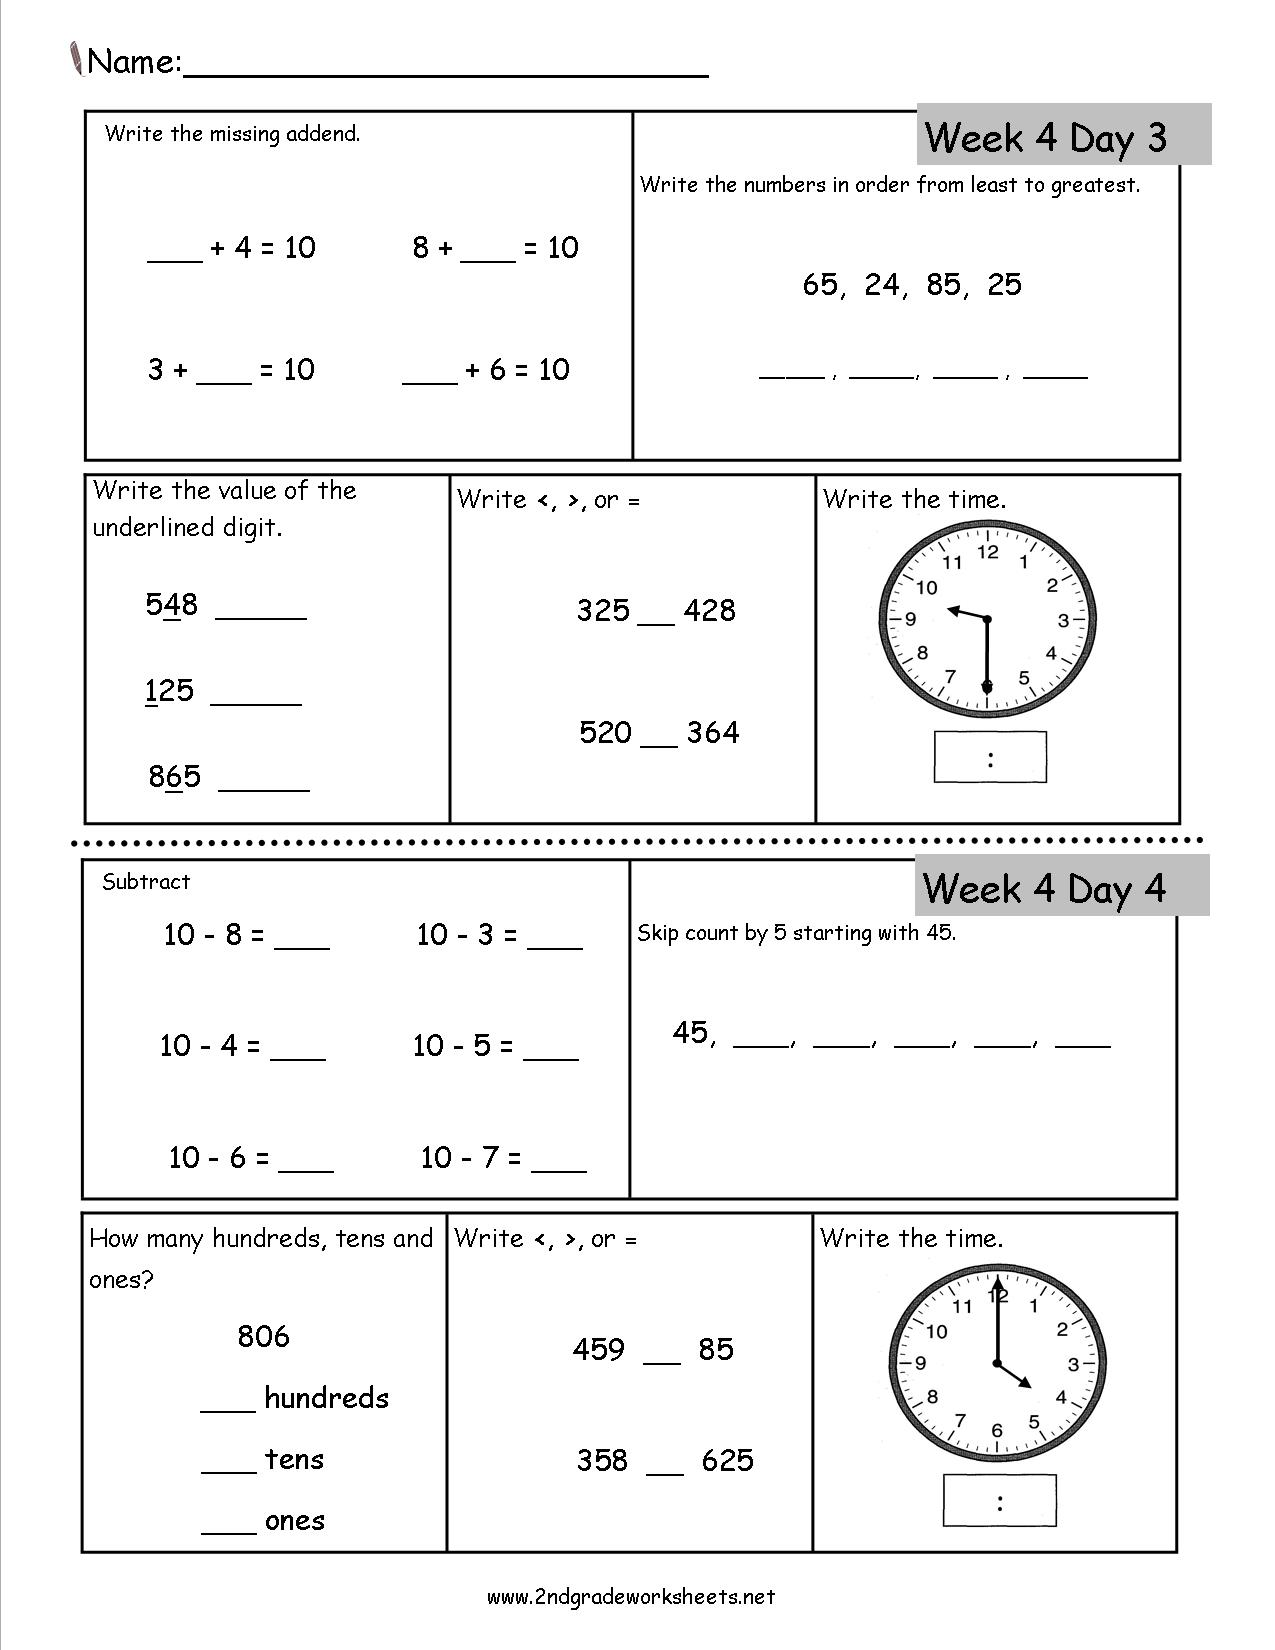 Worksheet Common Core Math Worksheets 2nd Grade free 2nd grade daily math worksheets worksheets